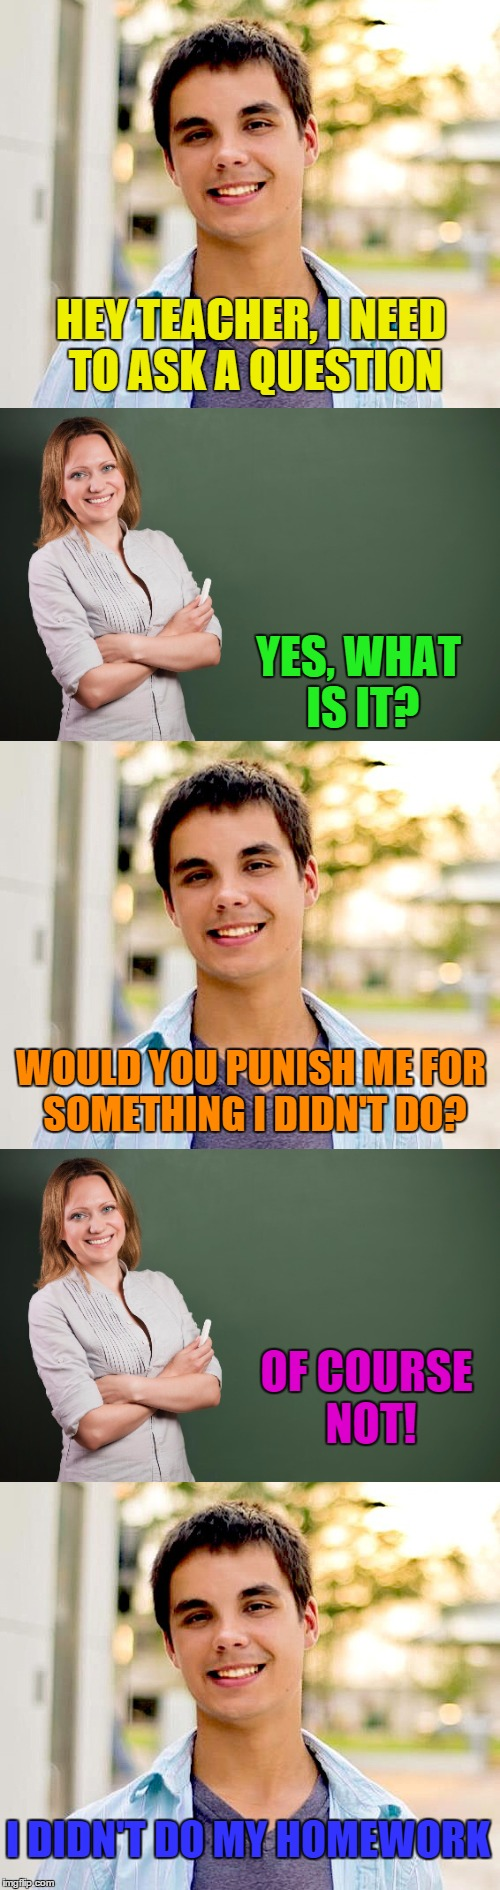 HEY TEACHER, I NEED TO ASK A QUESTION YES, WHAT IS IT? WOULD YOU PUNISH ME FOR SOMETHING I DIDN'T DO? OF COURSE NOT! I DIDN'T DO MY HOMEWORK | image tagged in memes,teacher,student | made w/ Imgflip meme maker